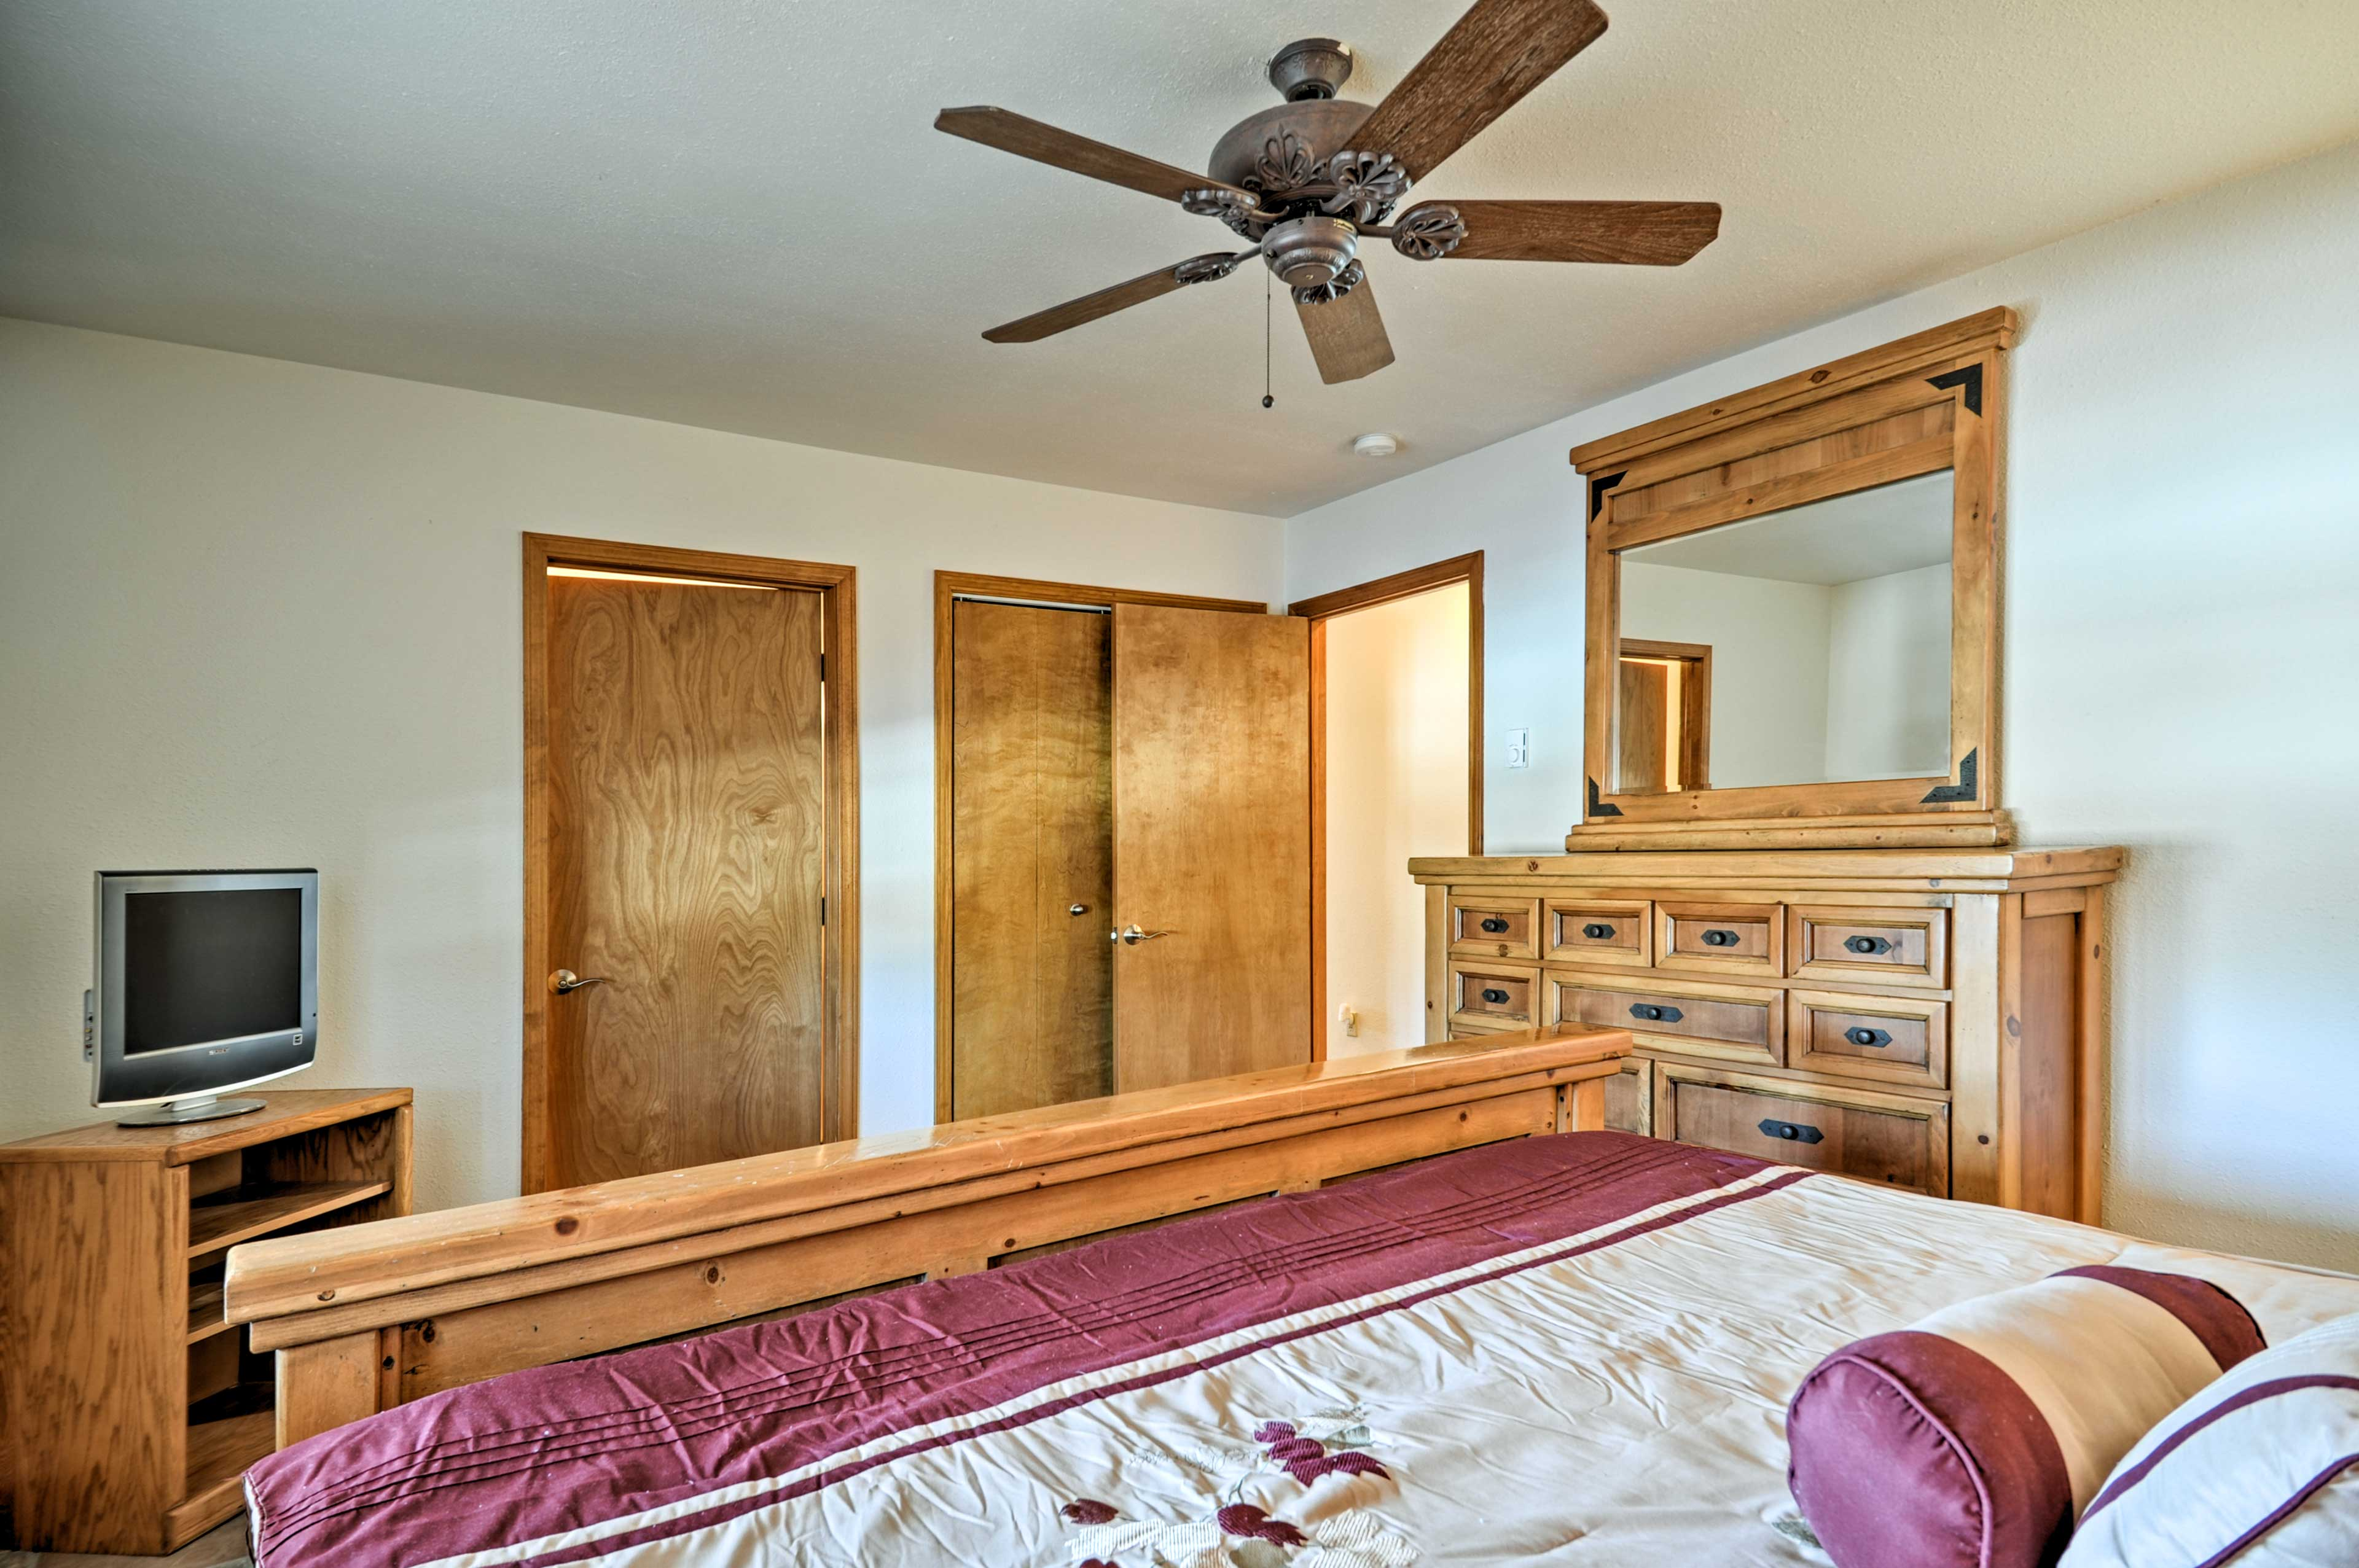 This room features a brand new 40-inch flat-screen Smart TV.